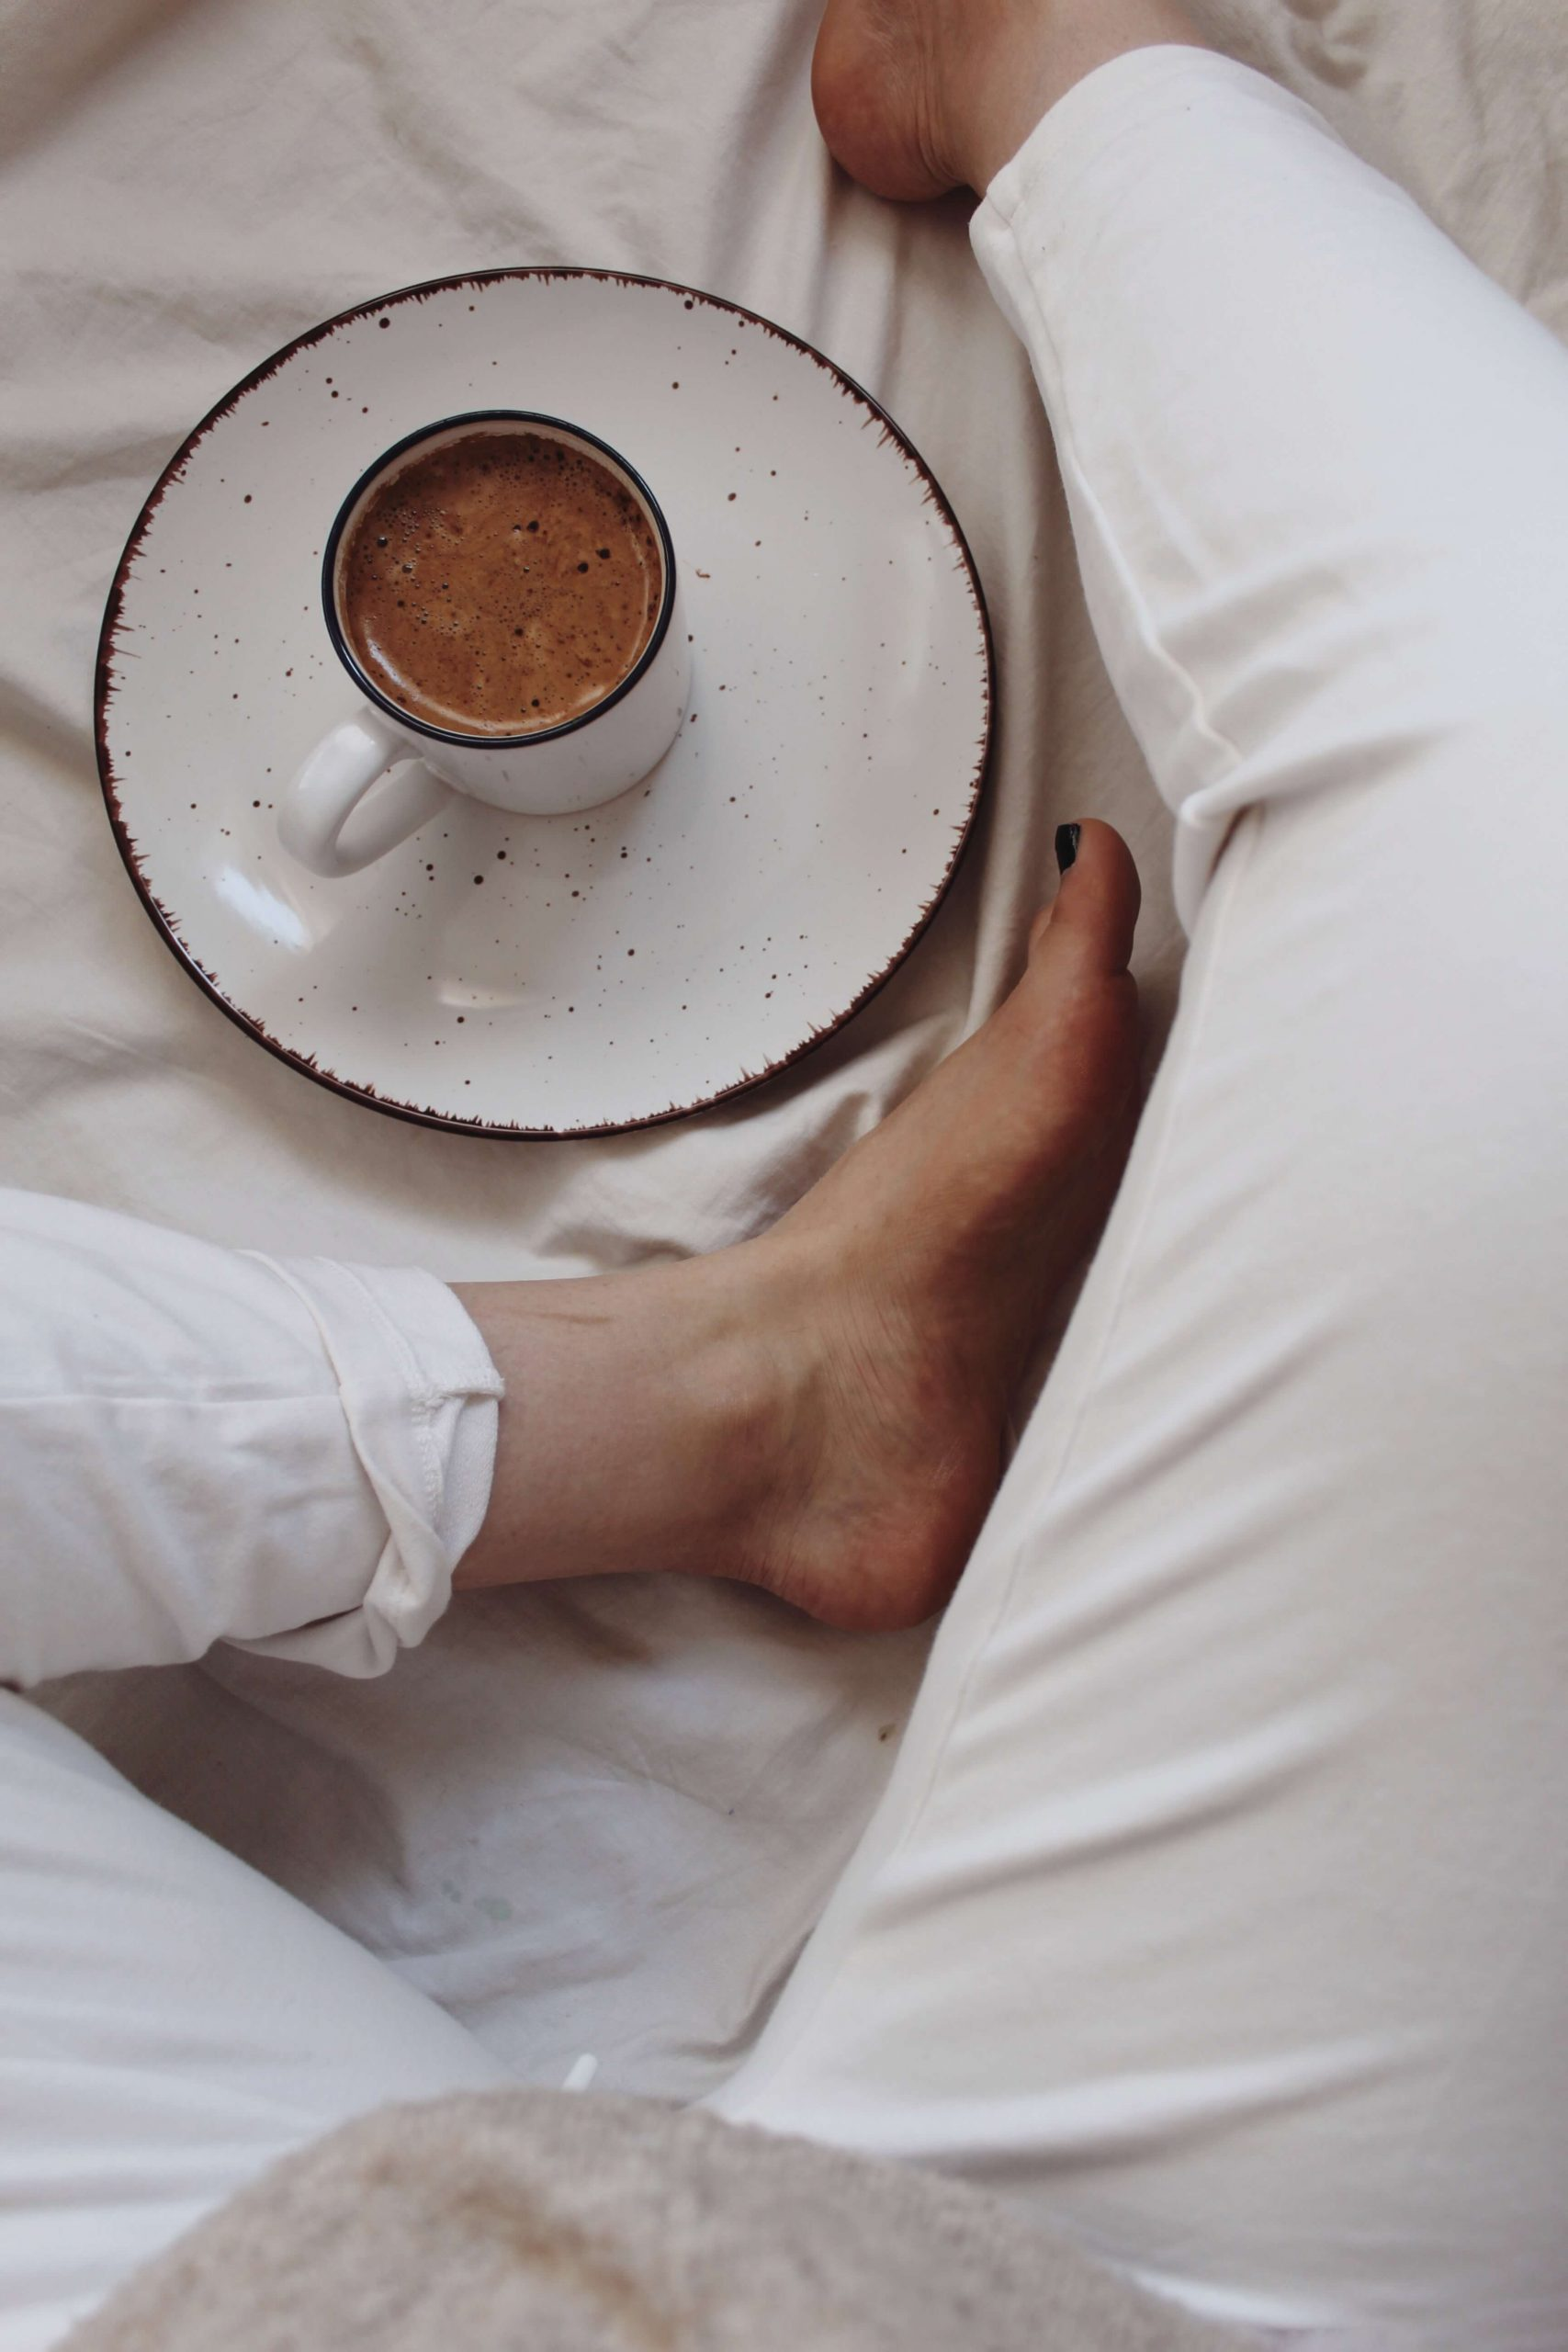 We all have days when we are too lazy to do something. Like when you just woke up, but then you feel exhausted already. It isn't necessarily a bad thing. We all have those moments and it's okay.